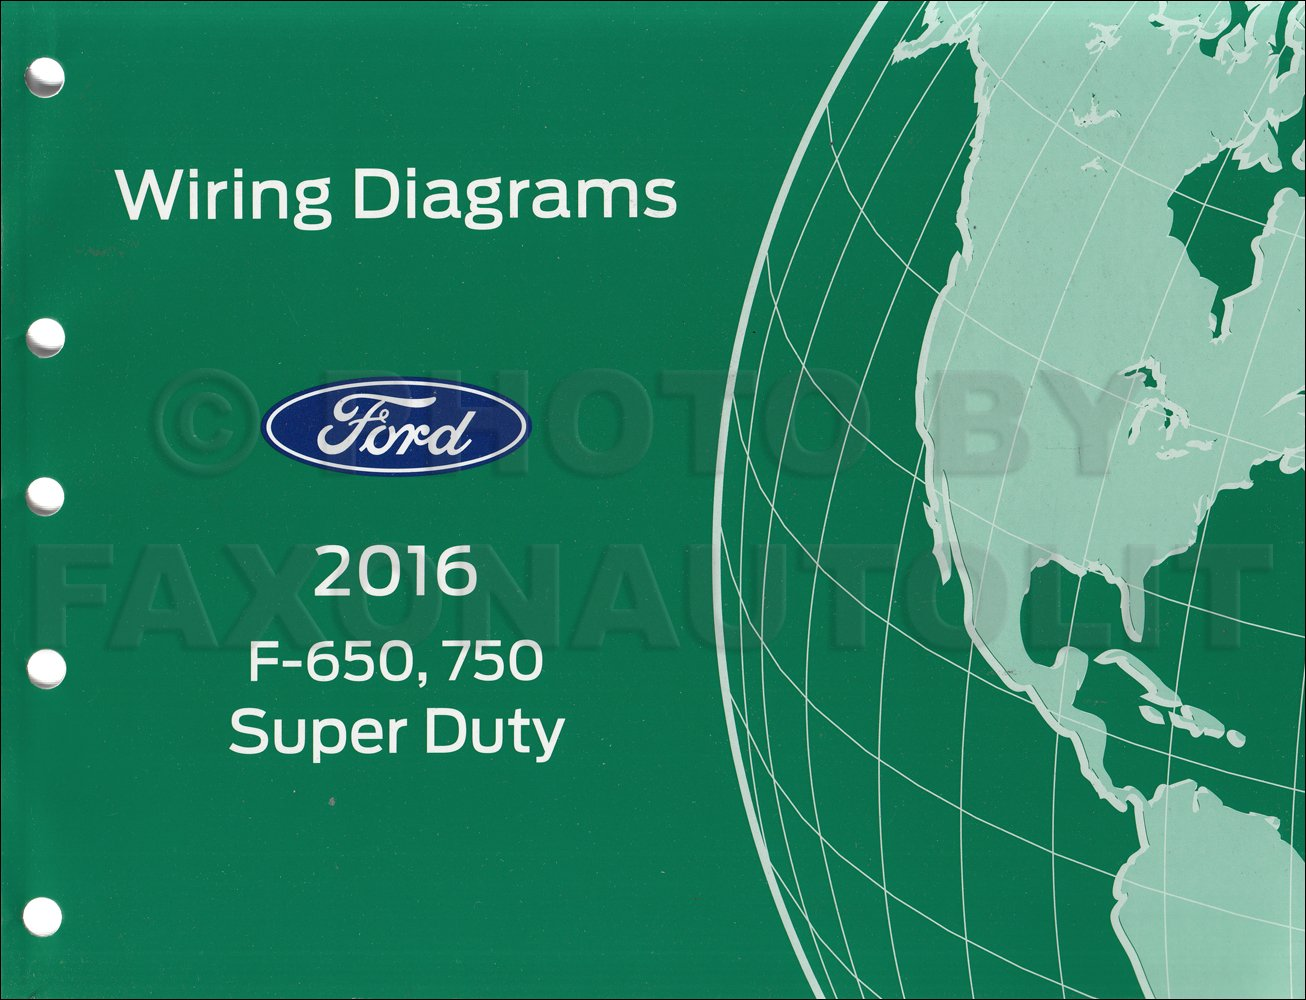 [DIAGRAM_1JK]  2016 Ford F-650 and F-750 Super Duty Truck Wiring Diagram Manual Original:  Ford: Amazon.com: Books | 1996 Ford F750 Wiring Schematic |  | Amazon.com